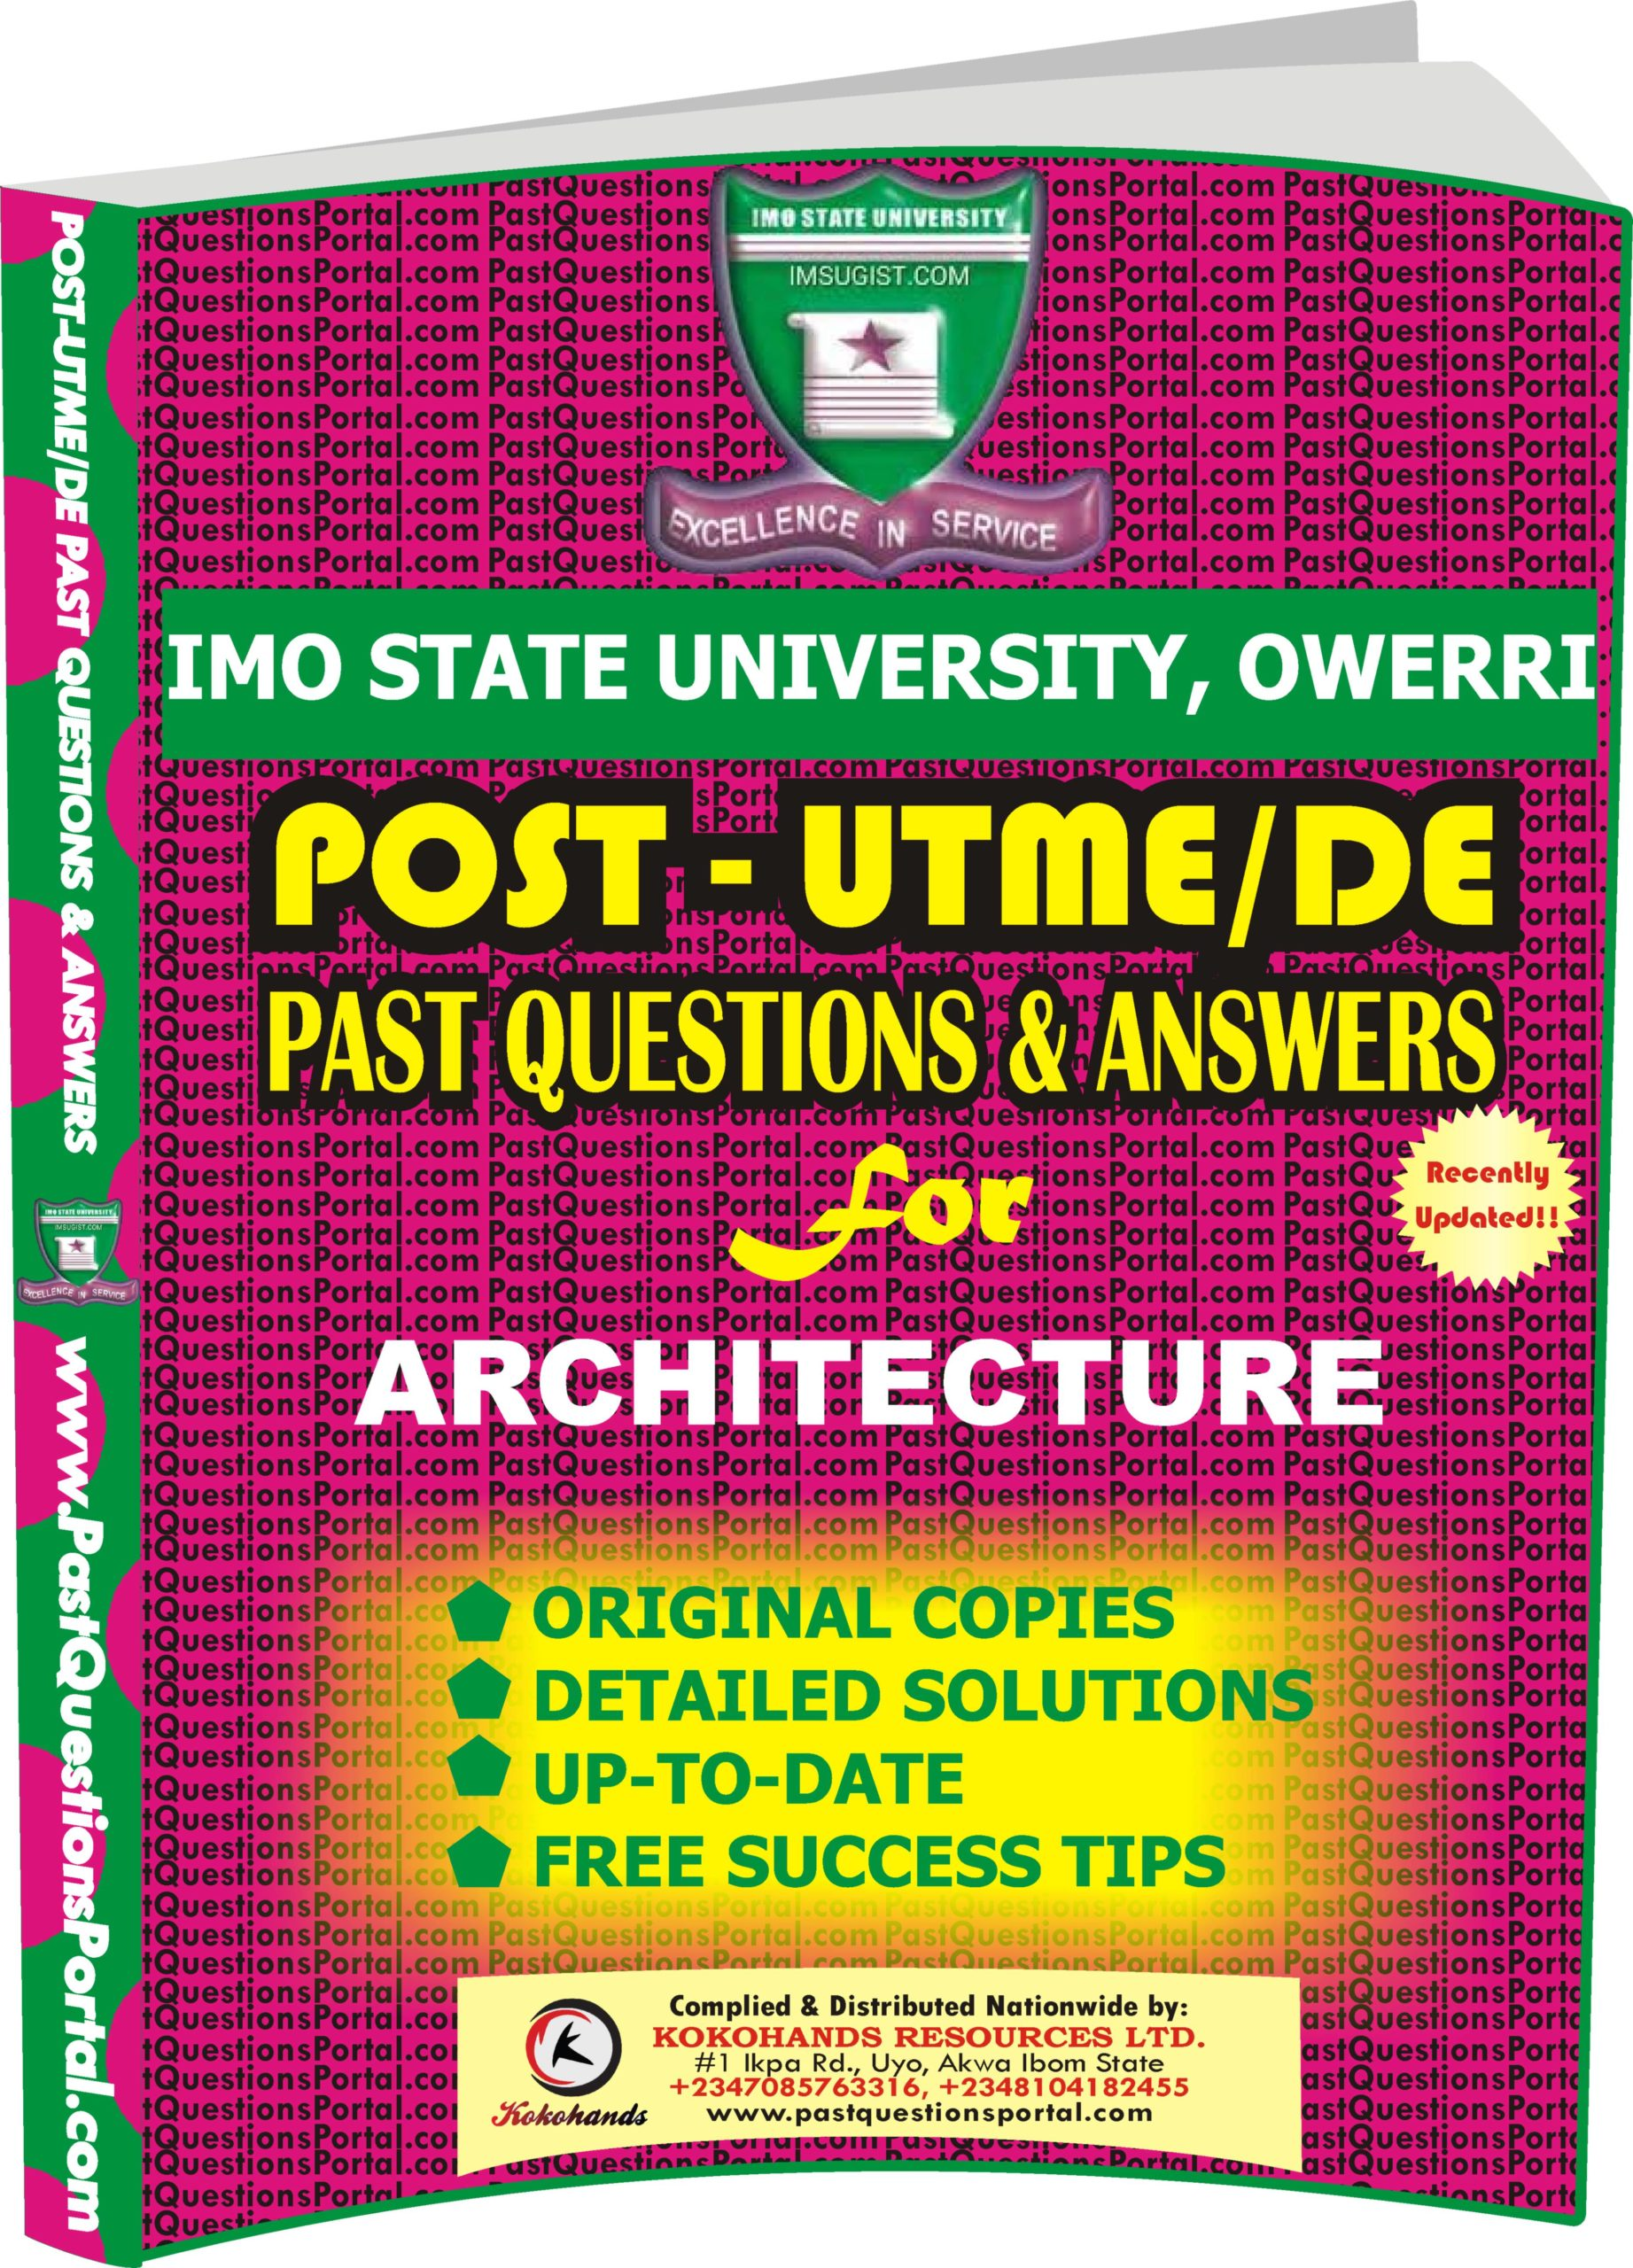 IMSU Post UTME Past Questions for ARCHITECTURE